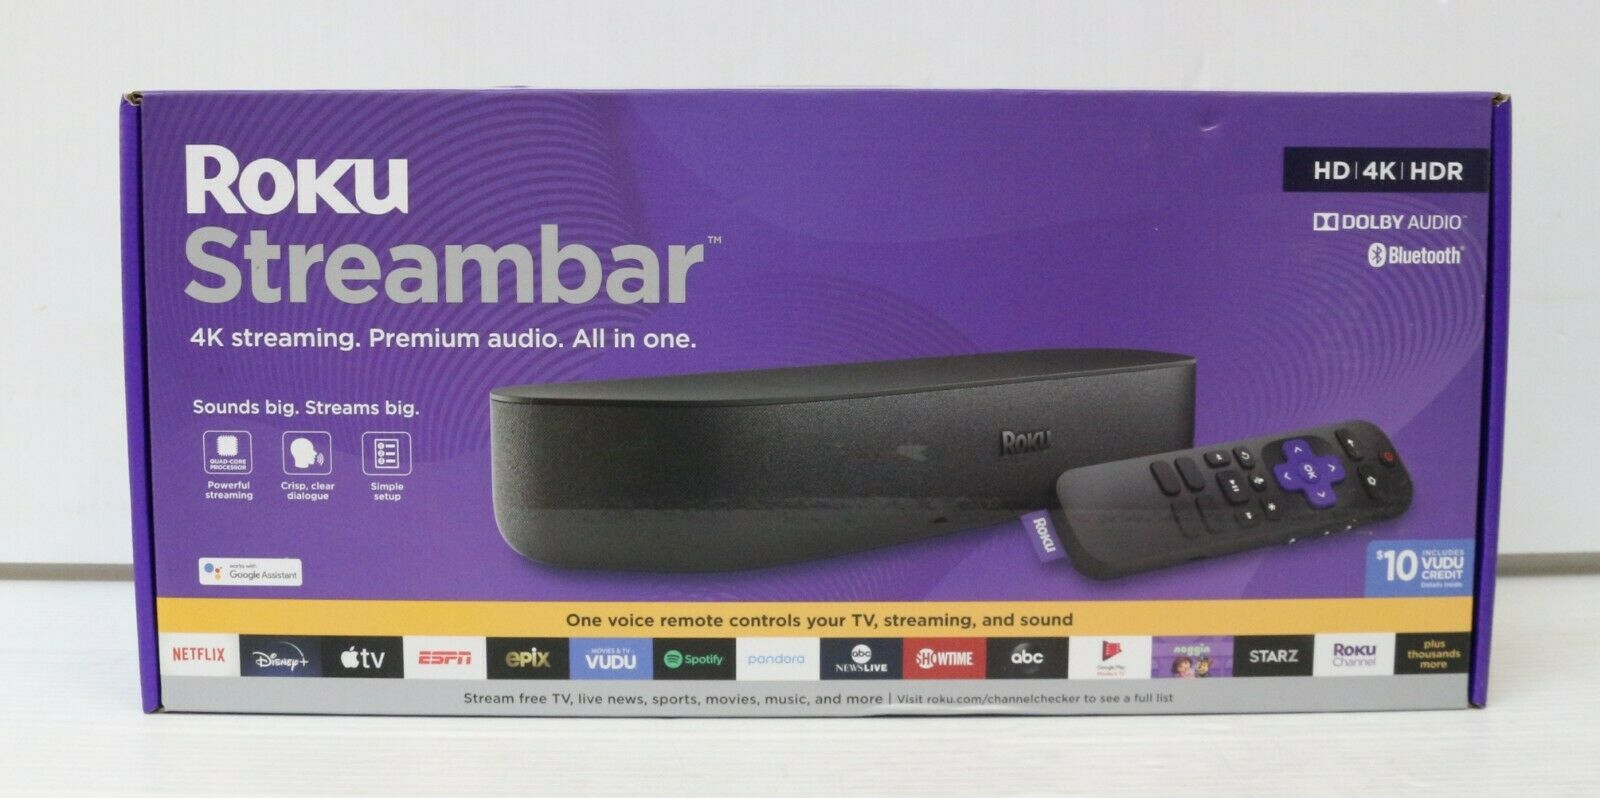 Roku Streambar 9102RW 4K Streaming Media Player / Premium Audio All in One - NEW 9102rw all audio media one player premium roku streambar streaming